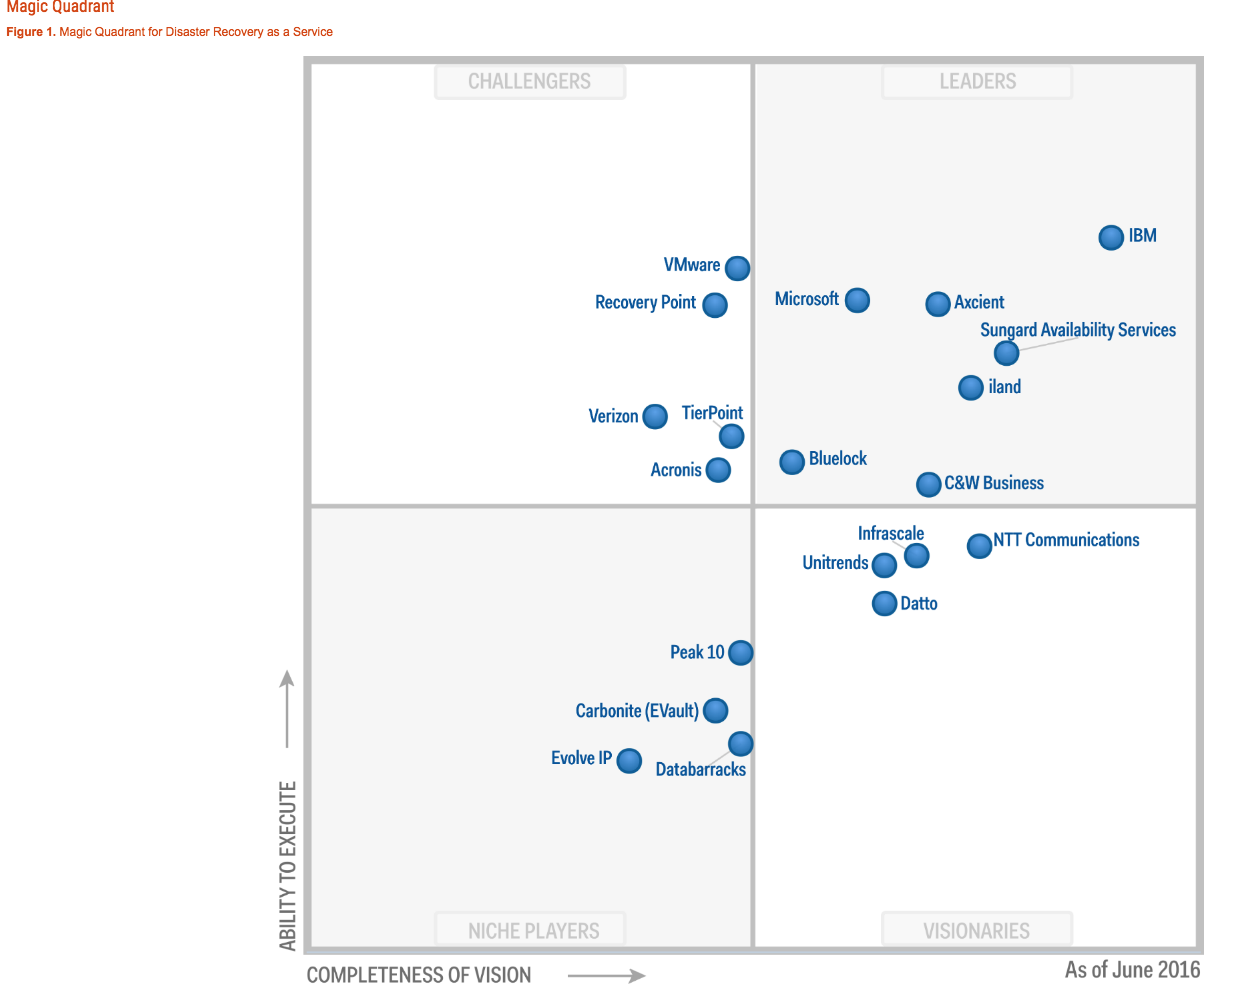 gartner-mq-dr-as-a-service-2016